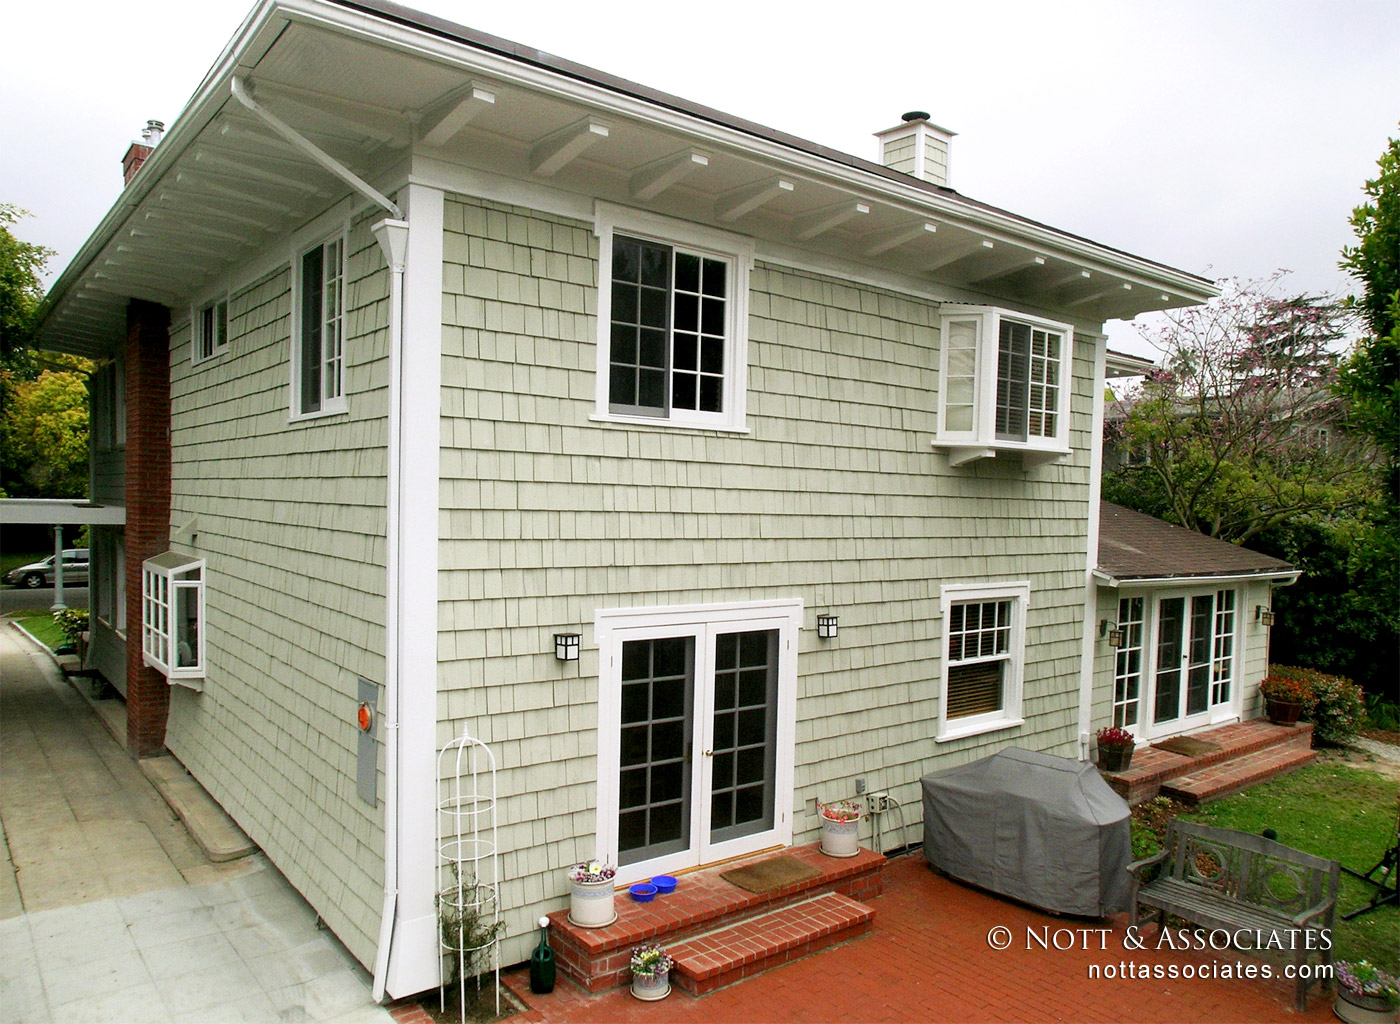 Home with wood shingle siding in Pasadena.